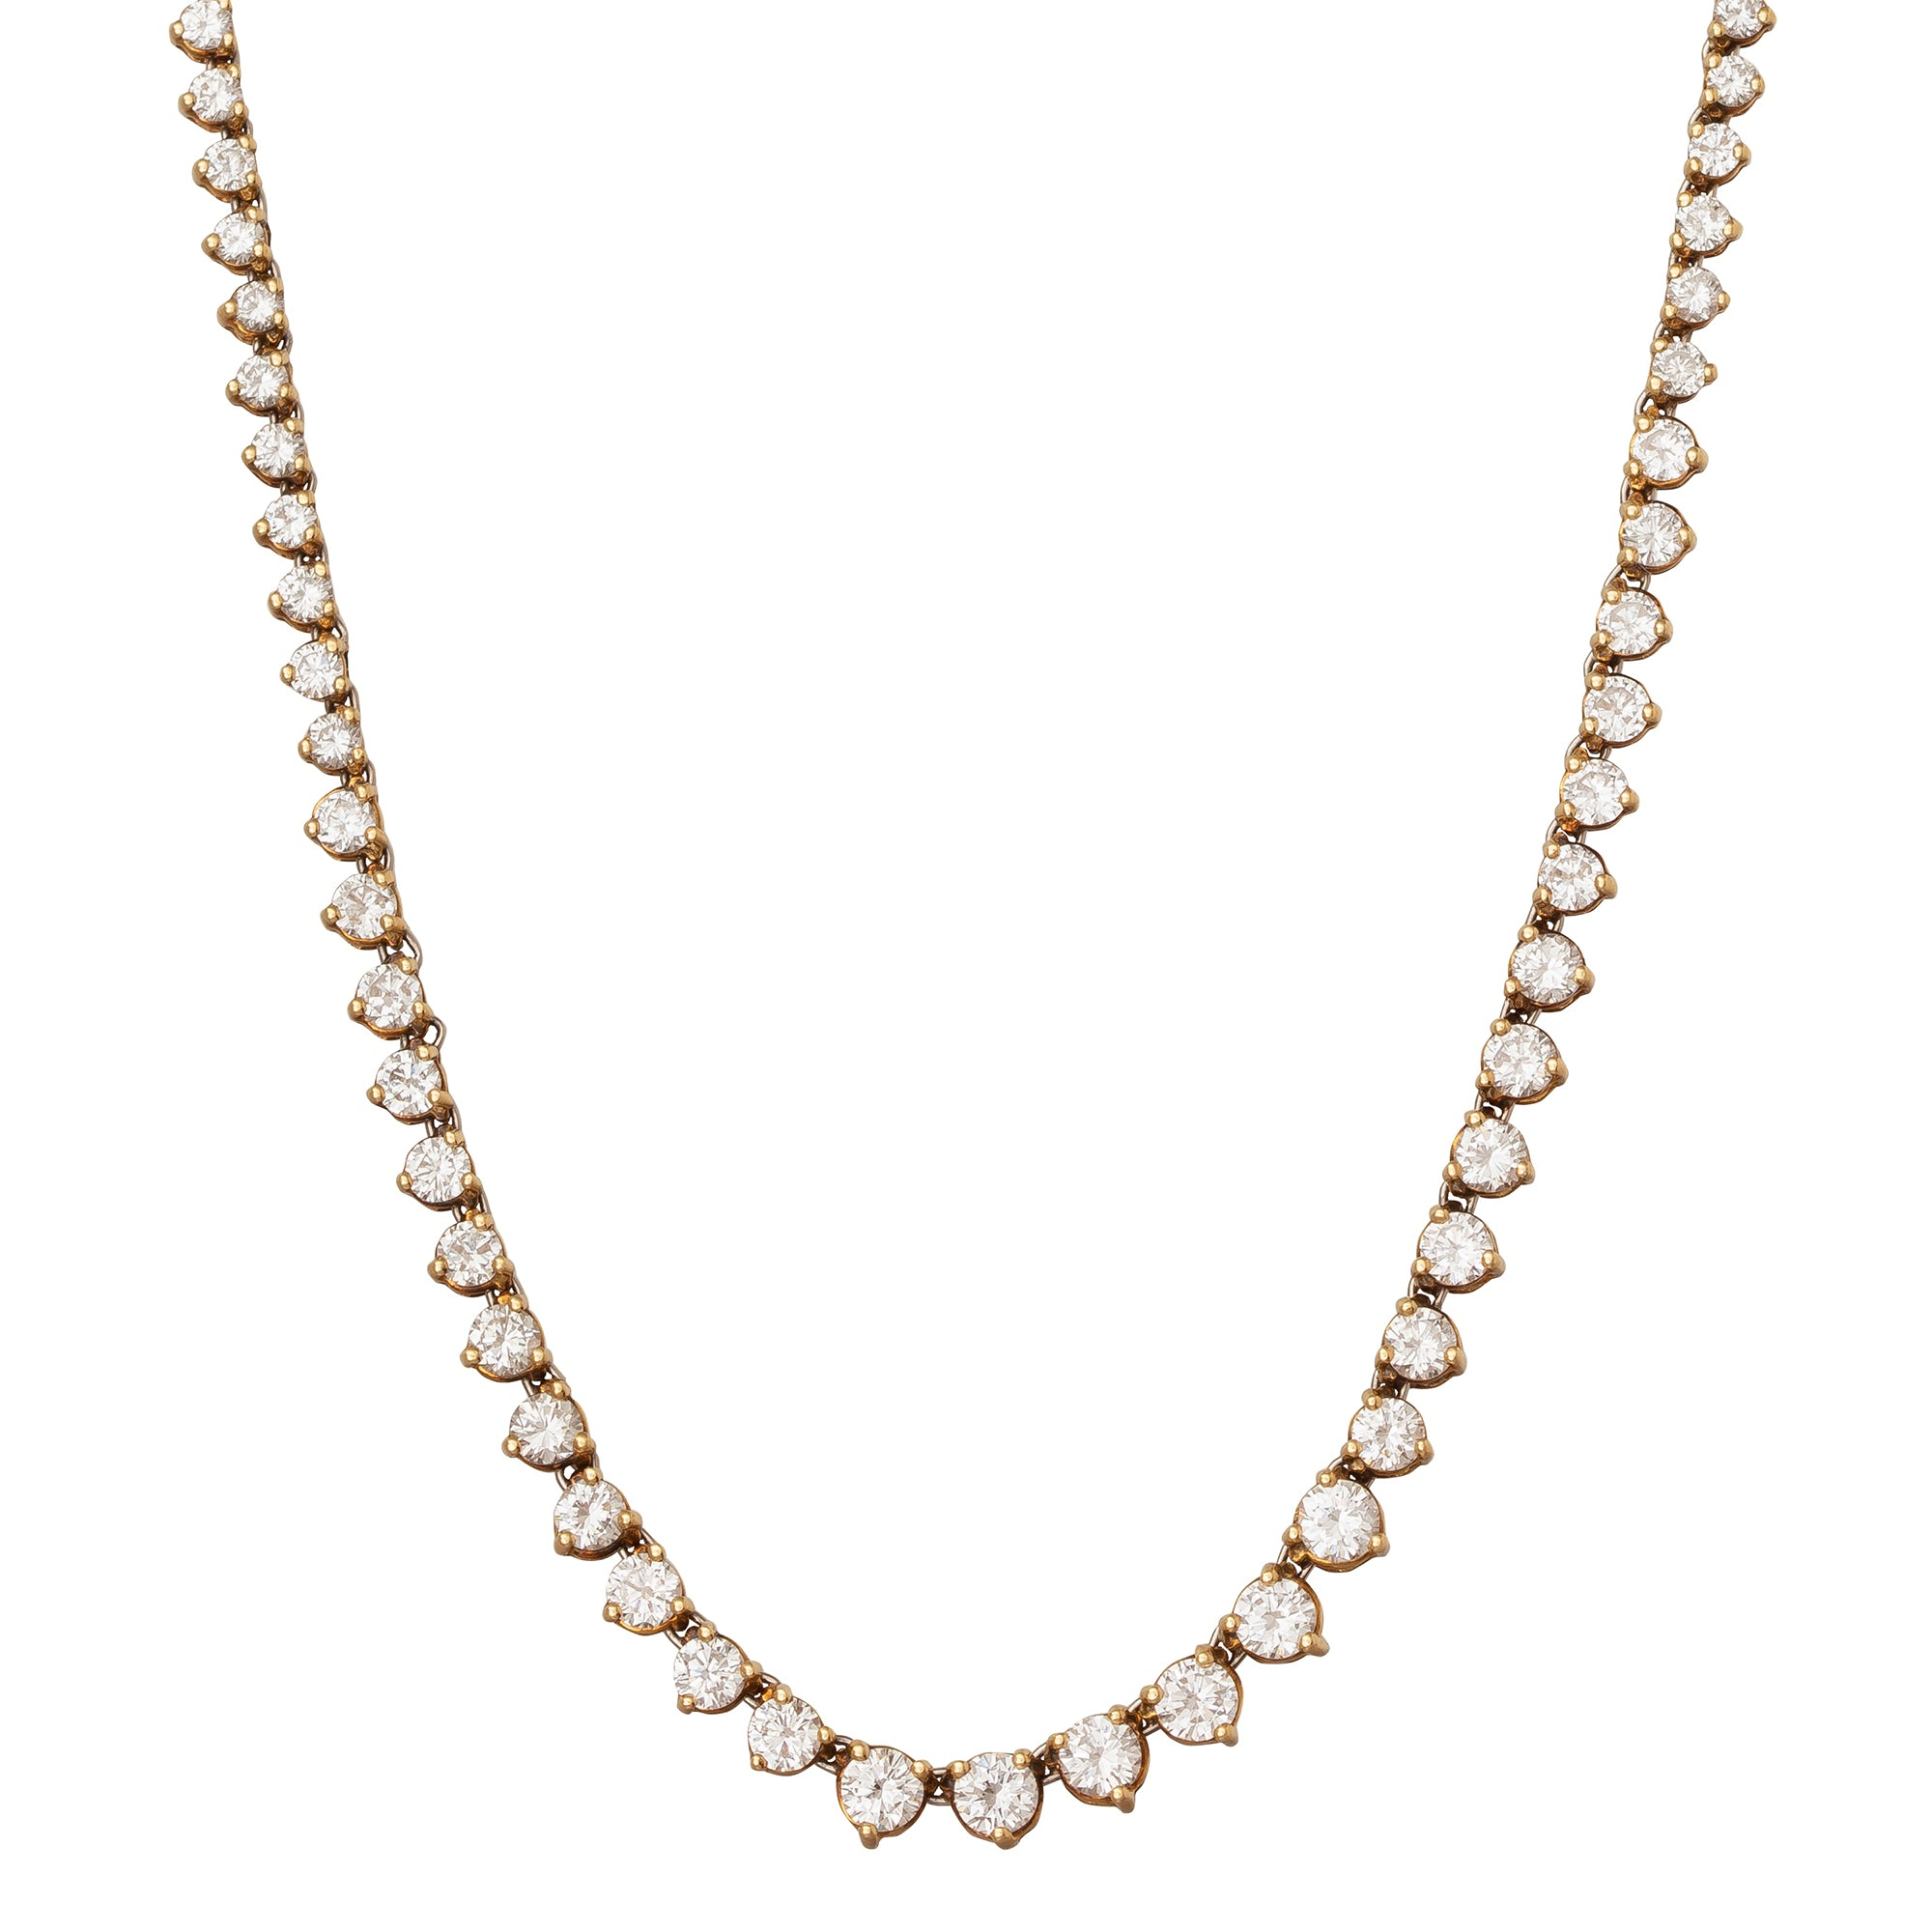 Cartier Diamond Necklace - Antique & Vintage Jewelry - Necklaces | Broken English Jewelry